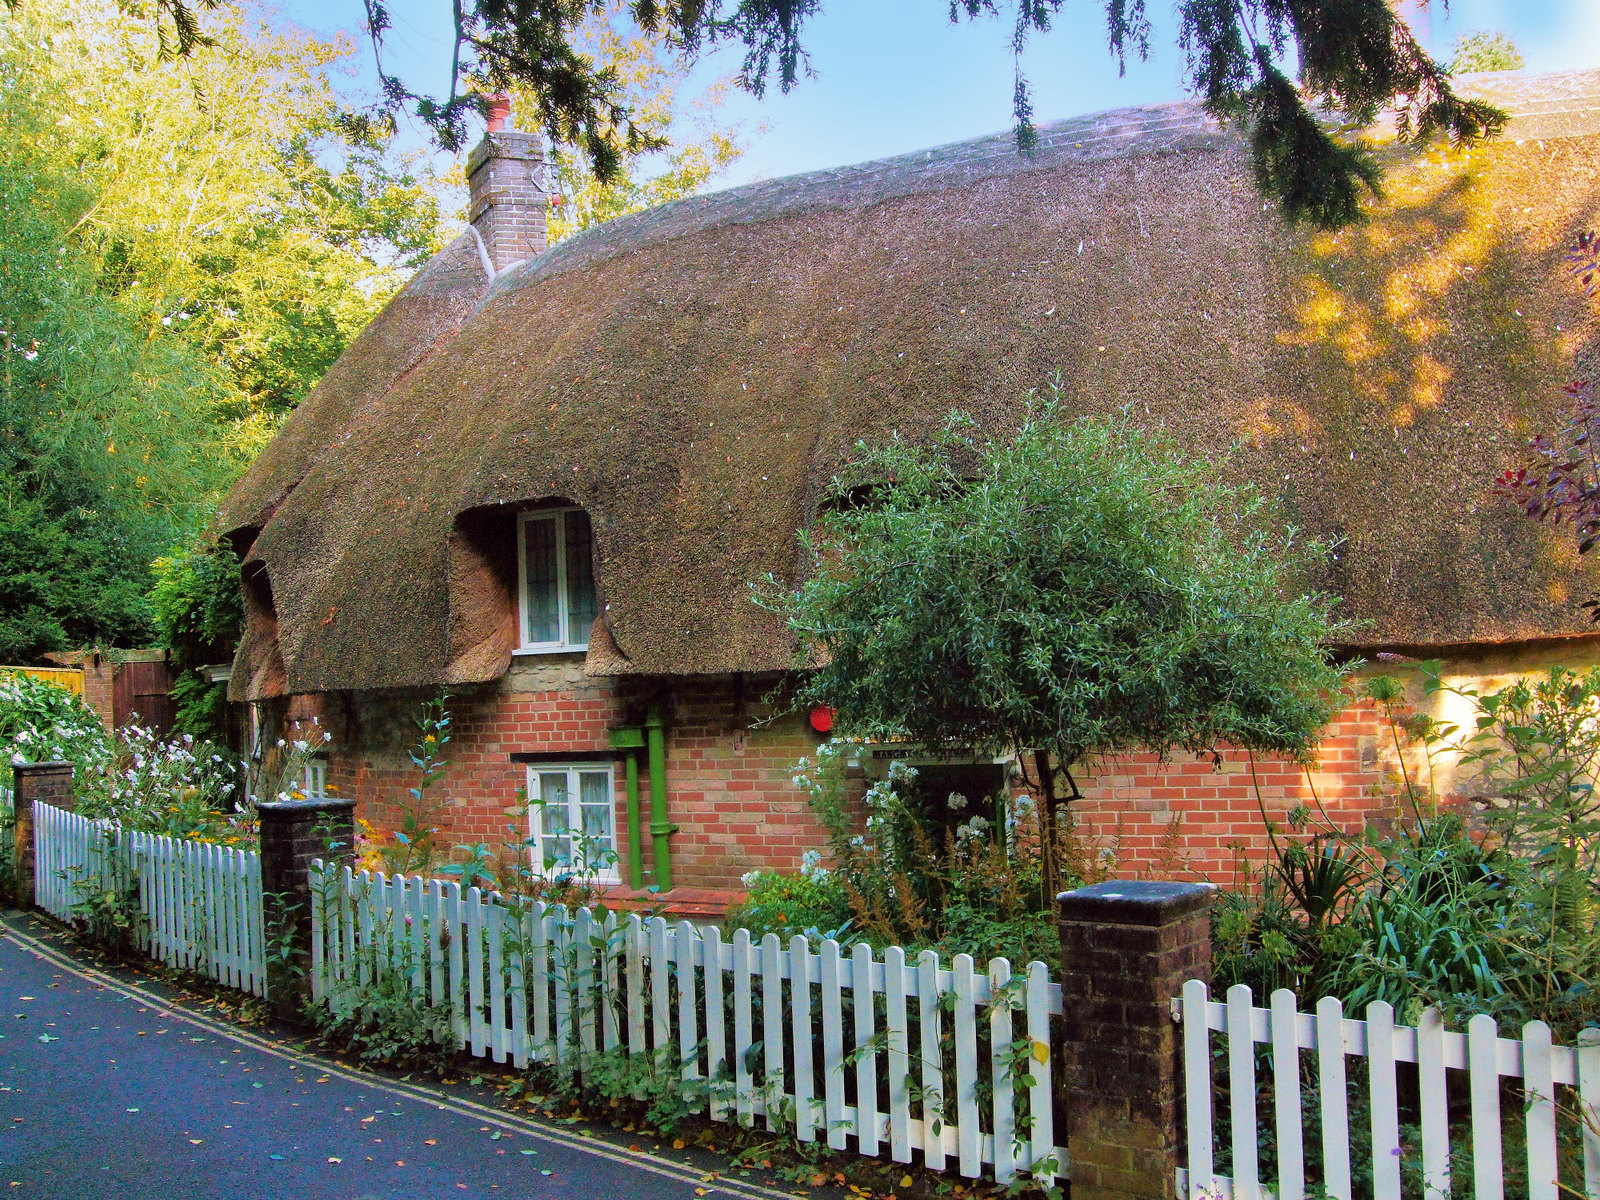 Thatched Cottage, Dorchester, Dorset